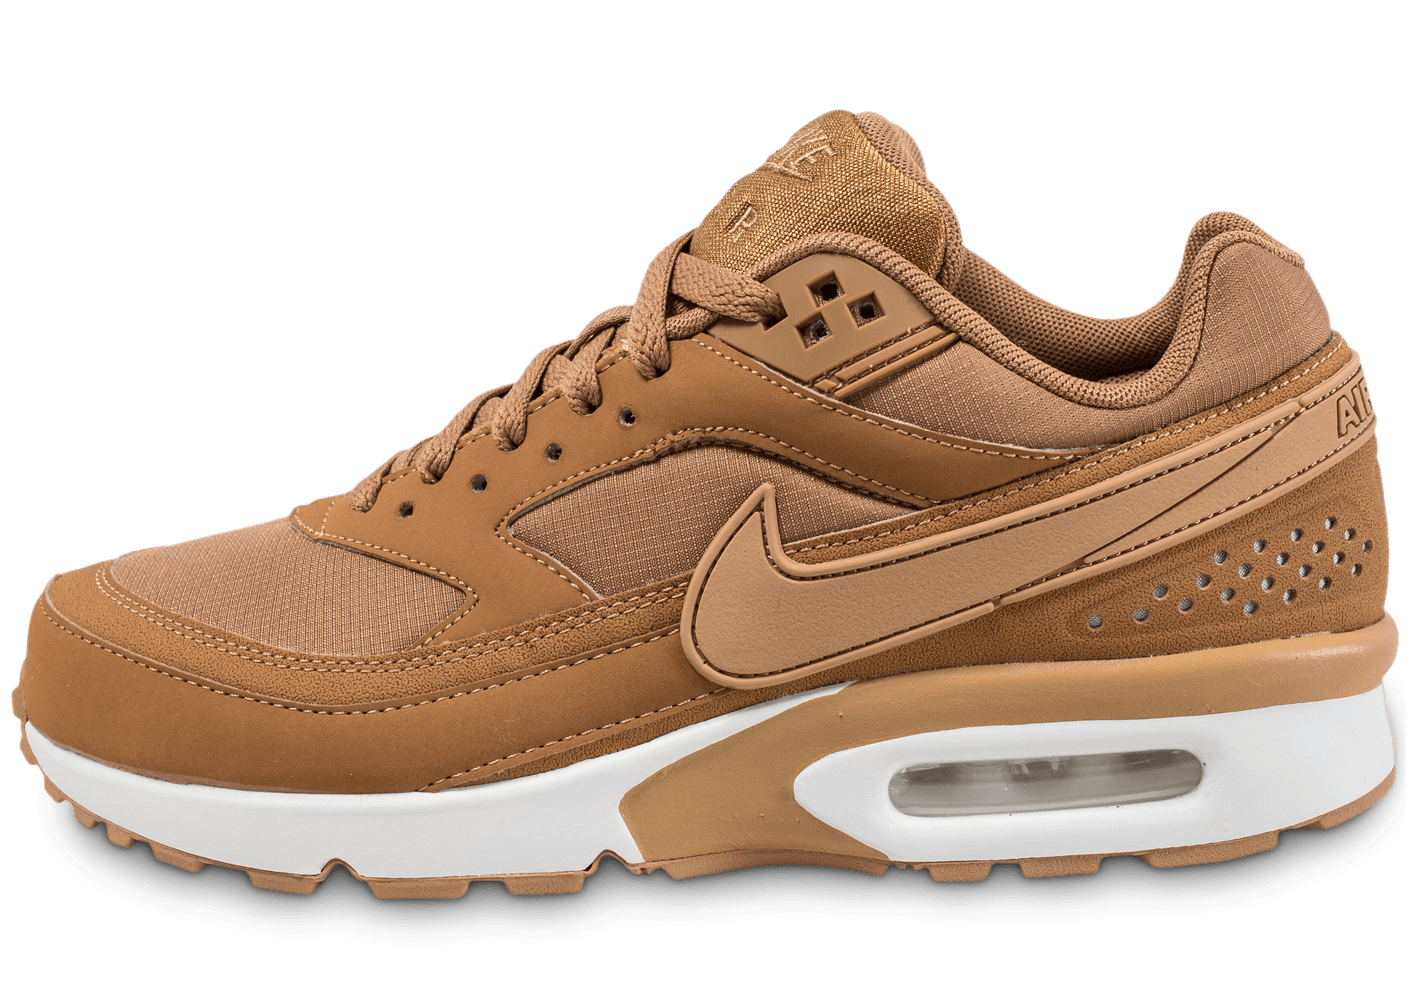 nike air max bw flax beige chaussures homme chausport. Black Bedroom Furniture Sets. Home Design Ideas